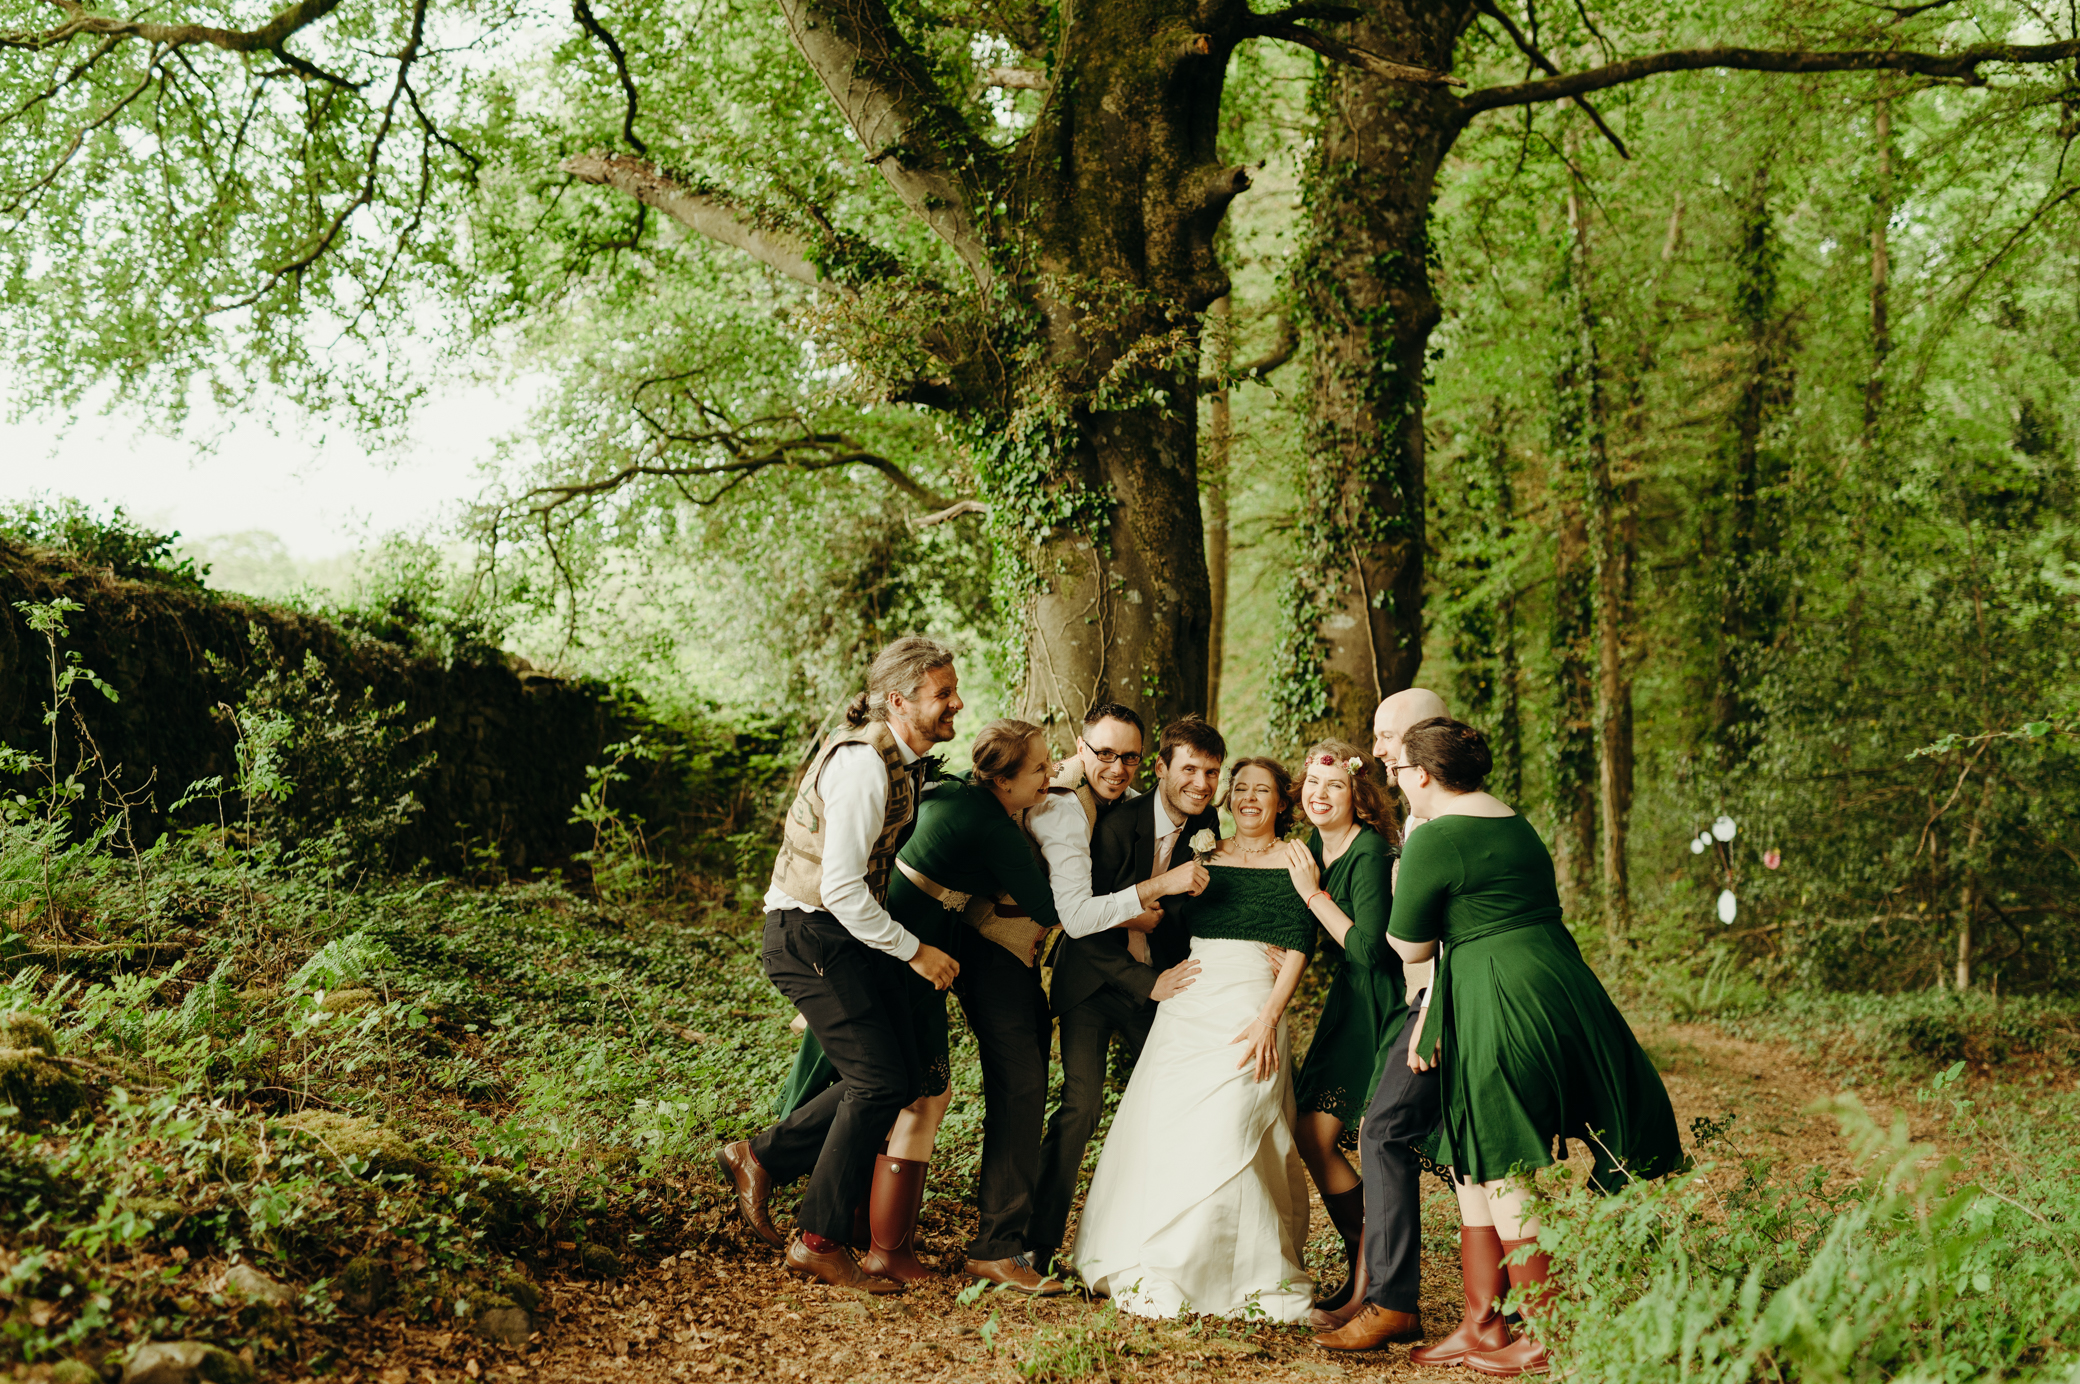 Alternative Wedding Ireland - Elopement photographer Ireland - Destination Photographer Europe-75.jpg